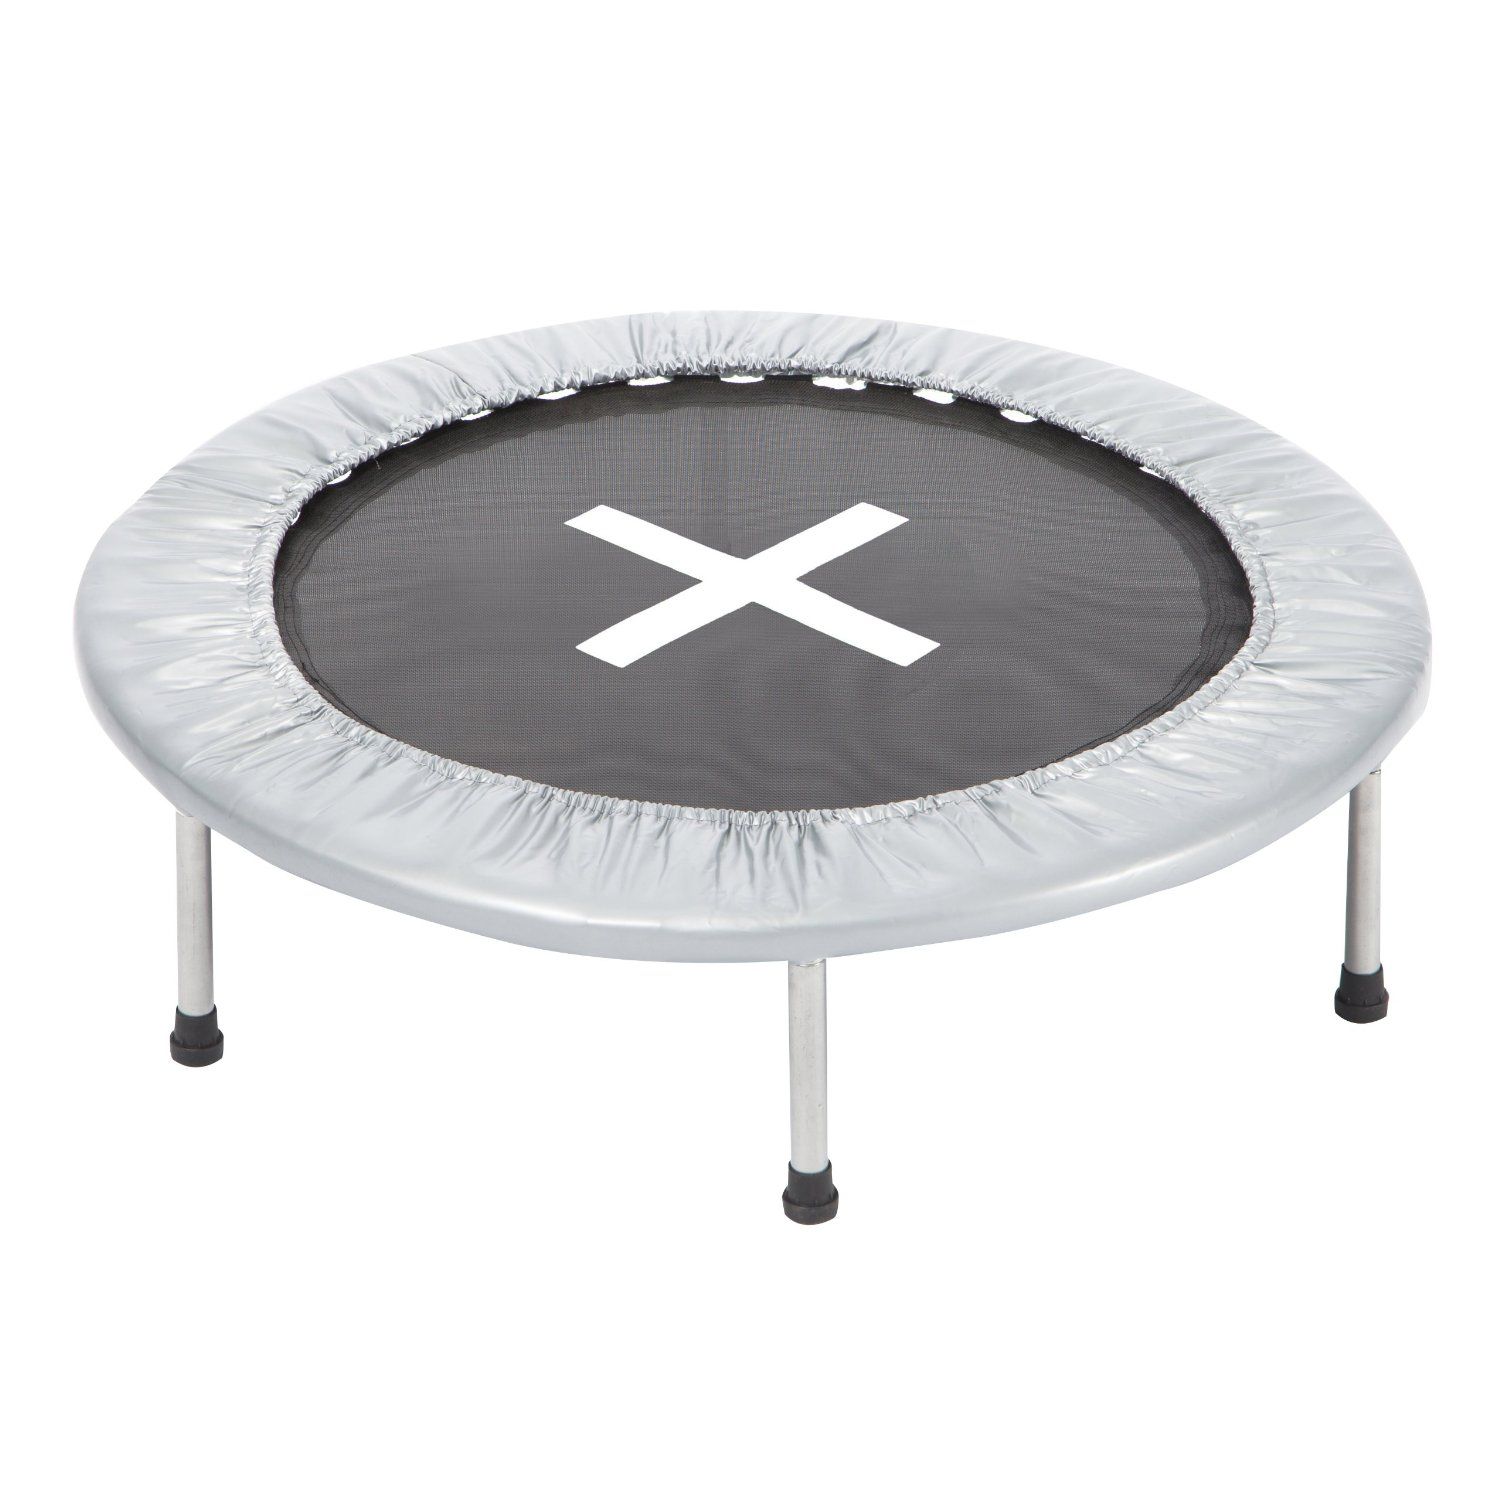 trampoline fitness jumpstar prix avis et critiques sportoza. Black Bedroom Furniture Sets. Home Design Ideas